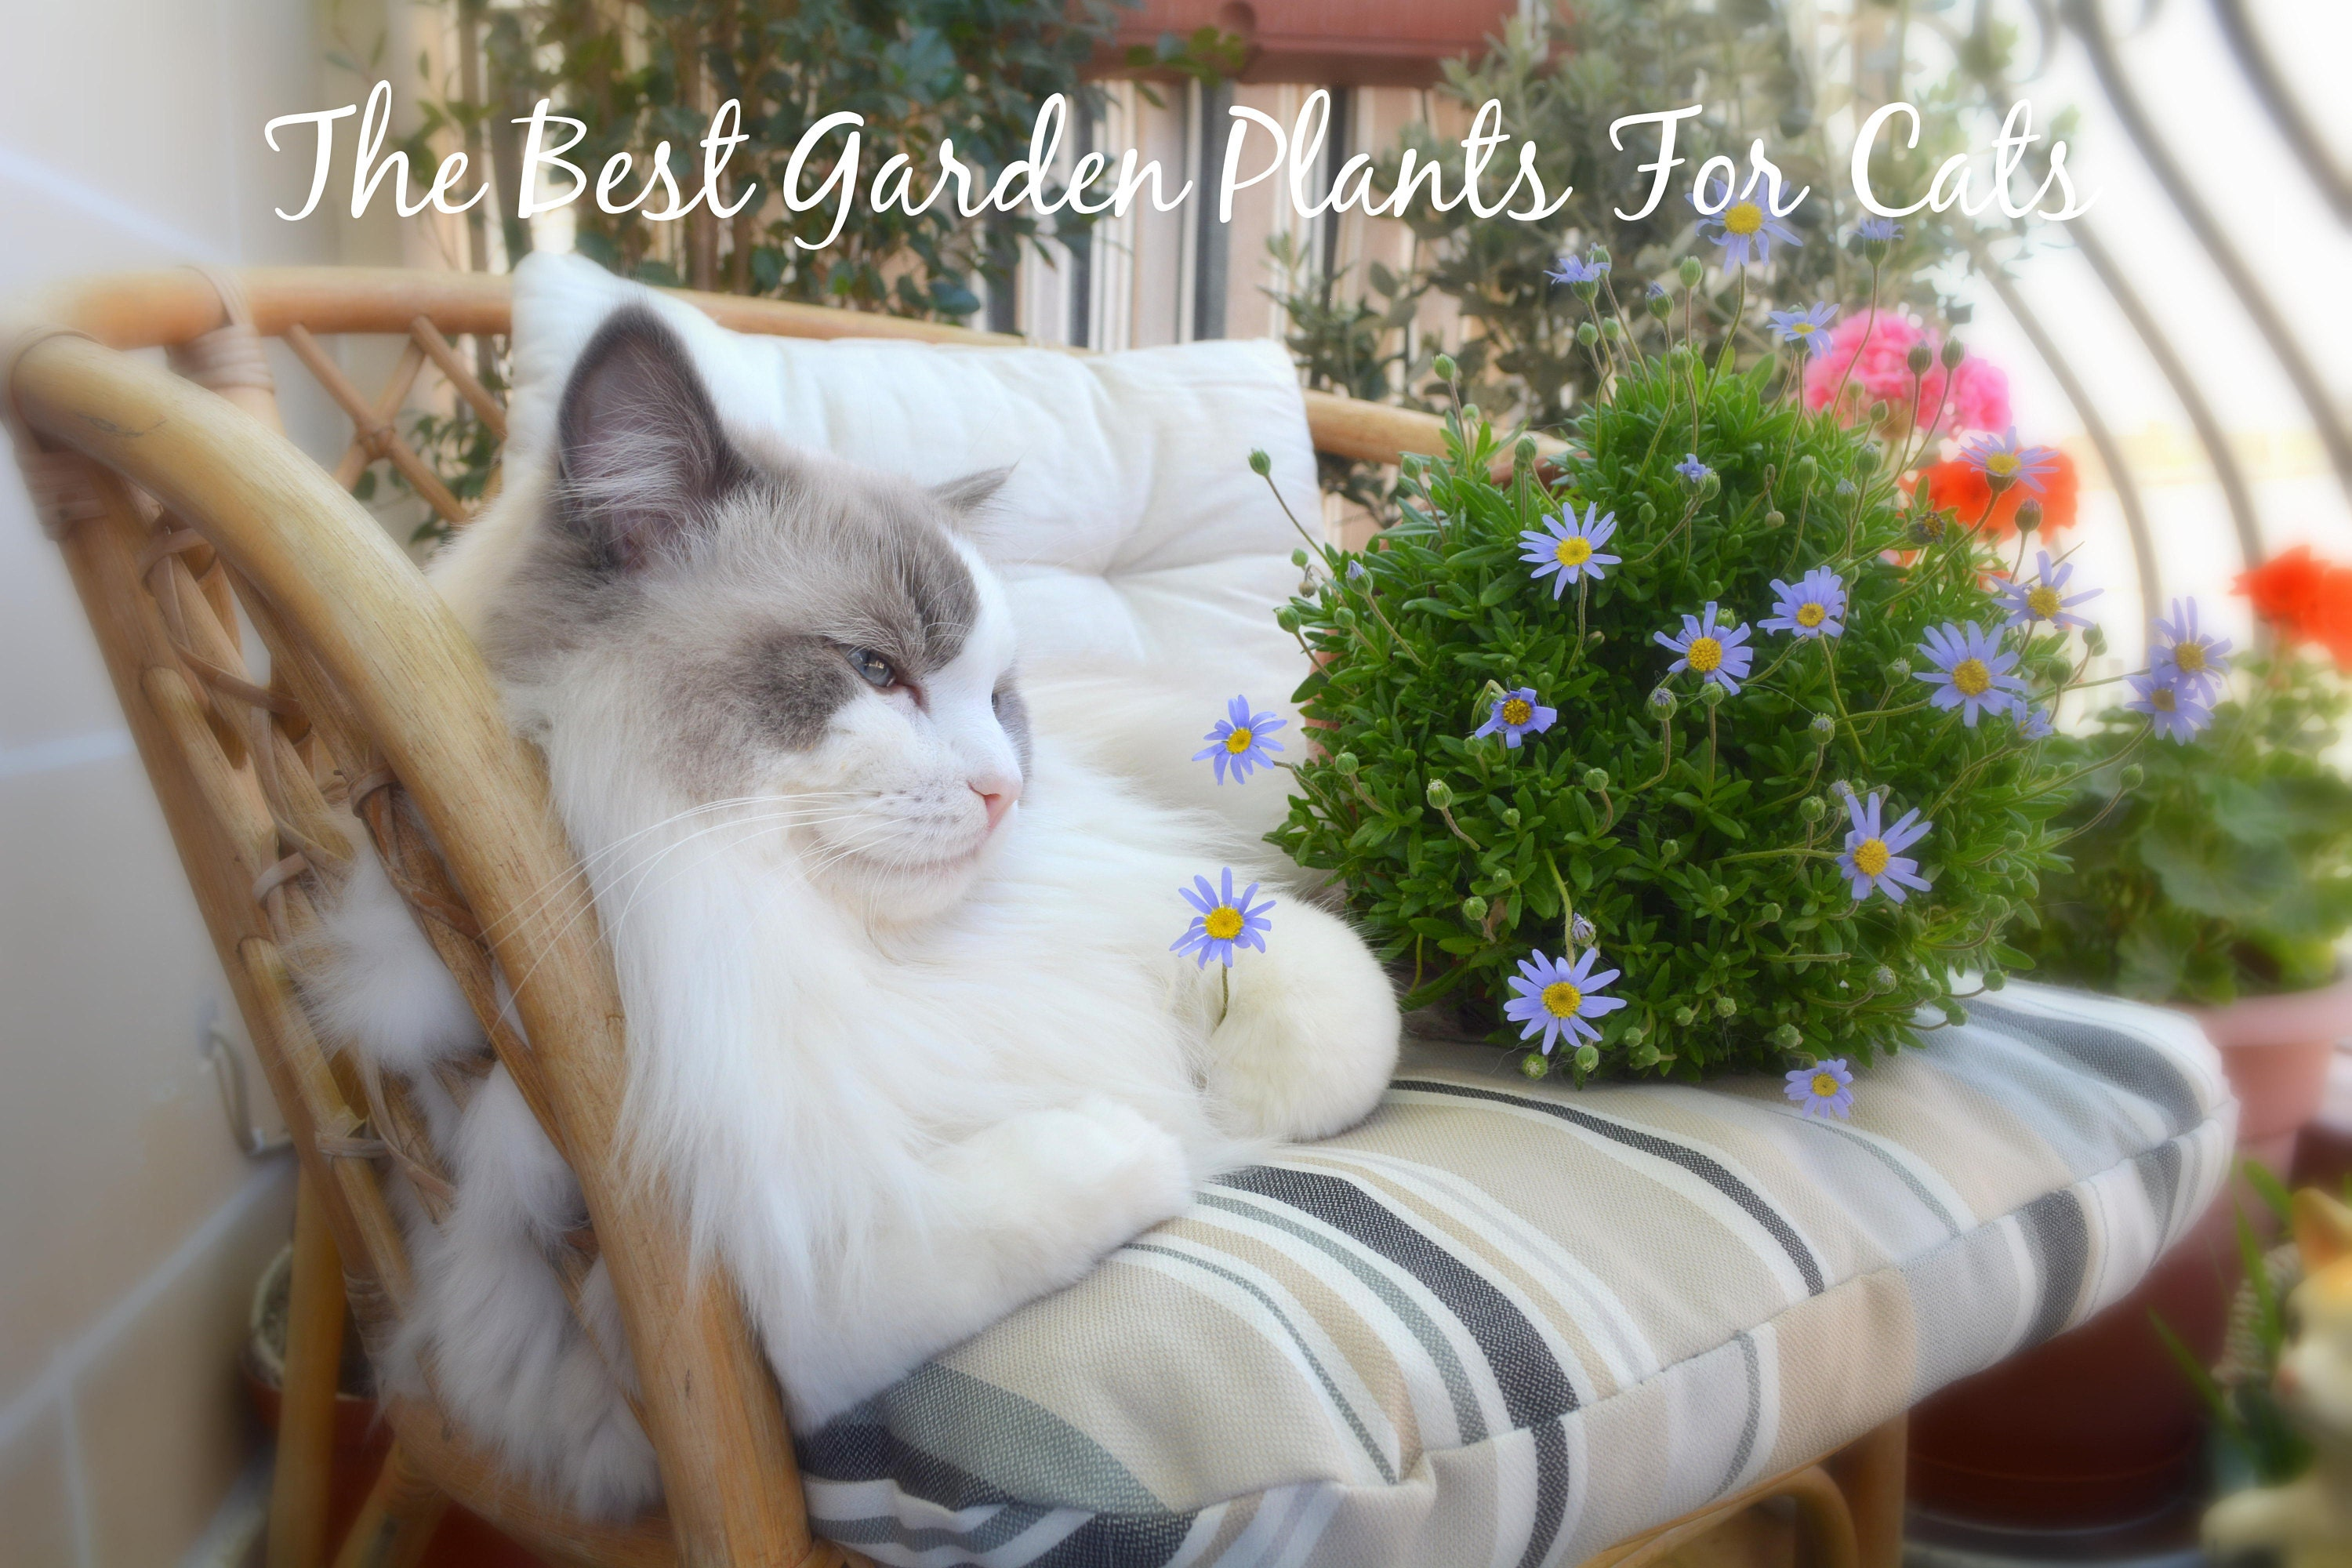 The Best Garden Plants For Cats